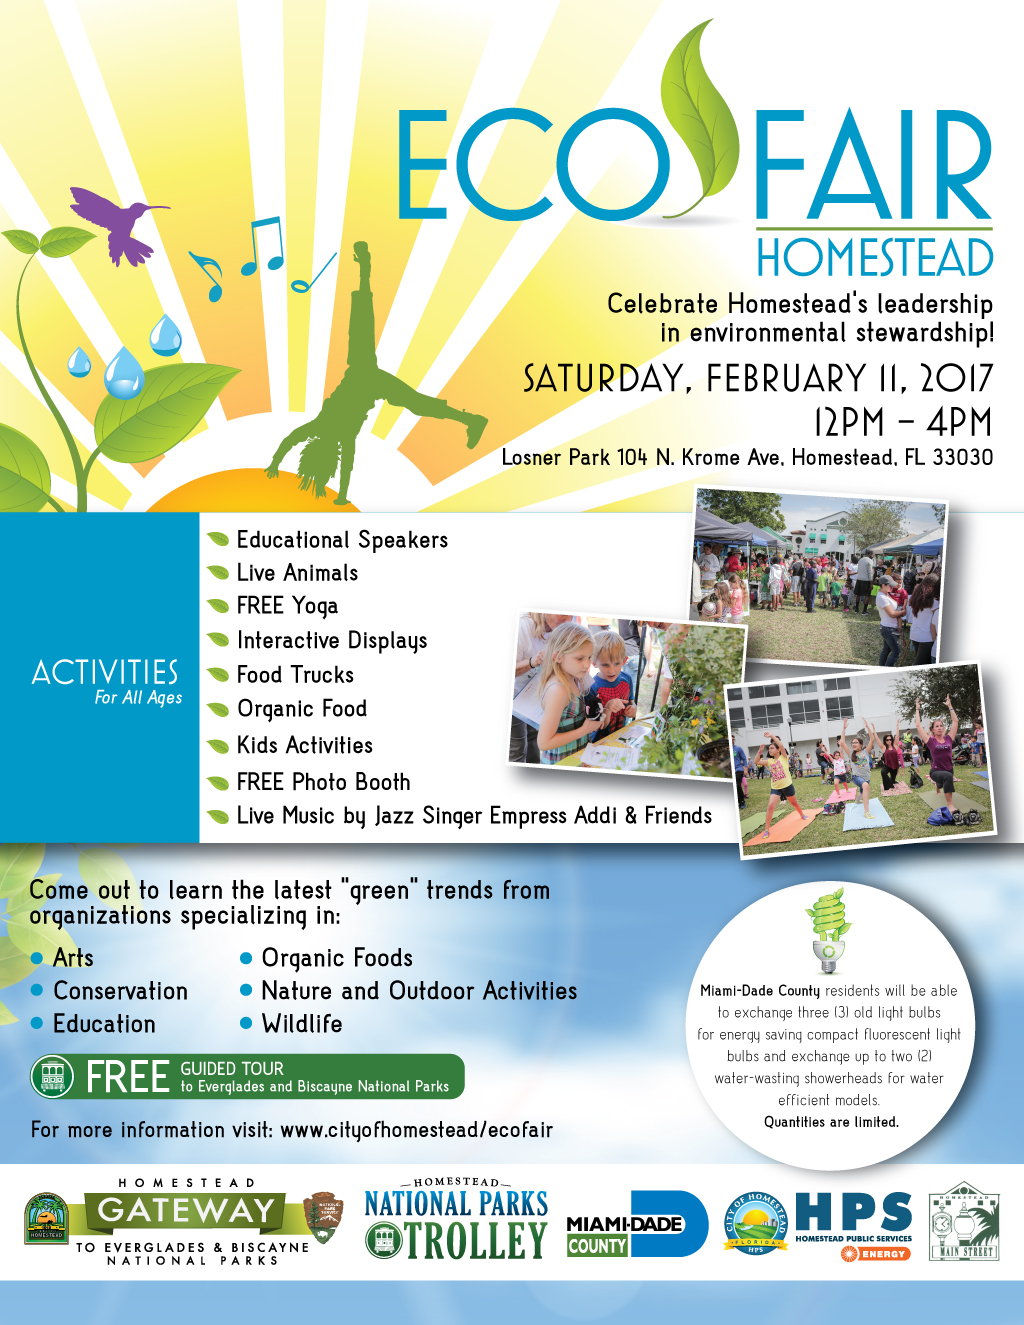 Homestead Eco Fair 2017